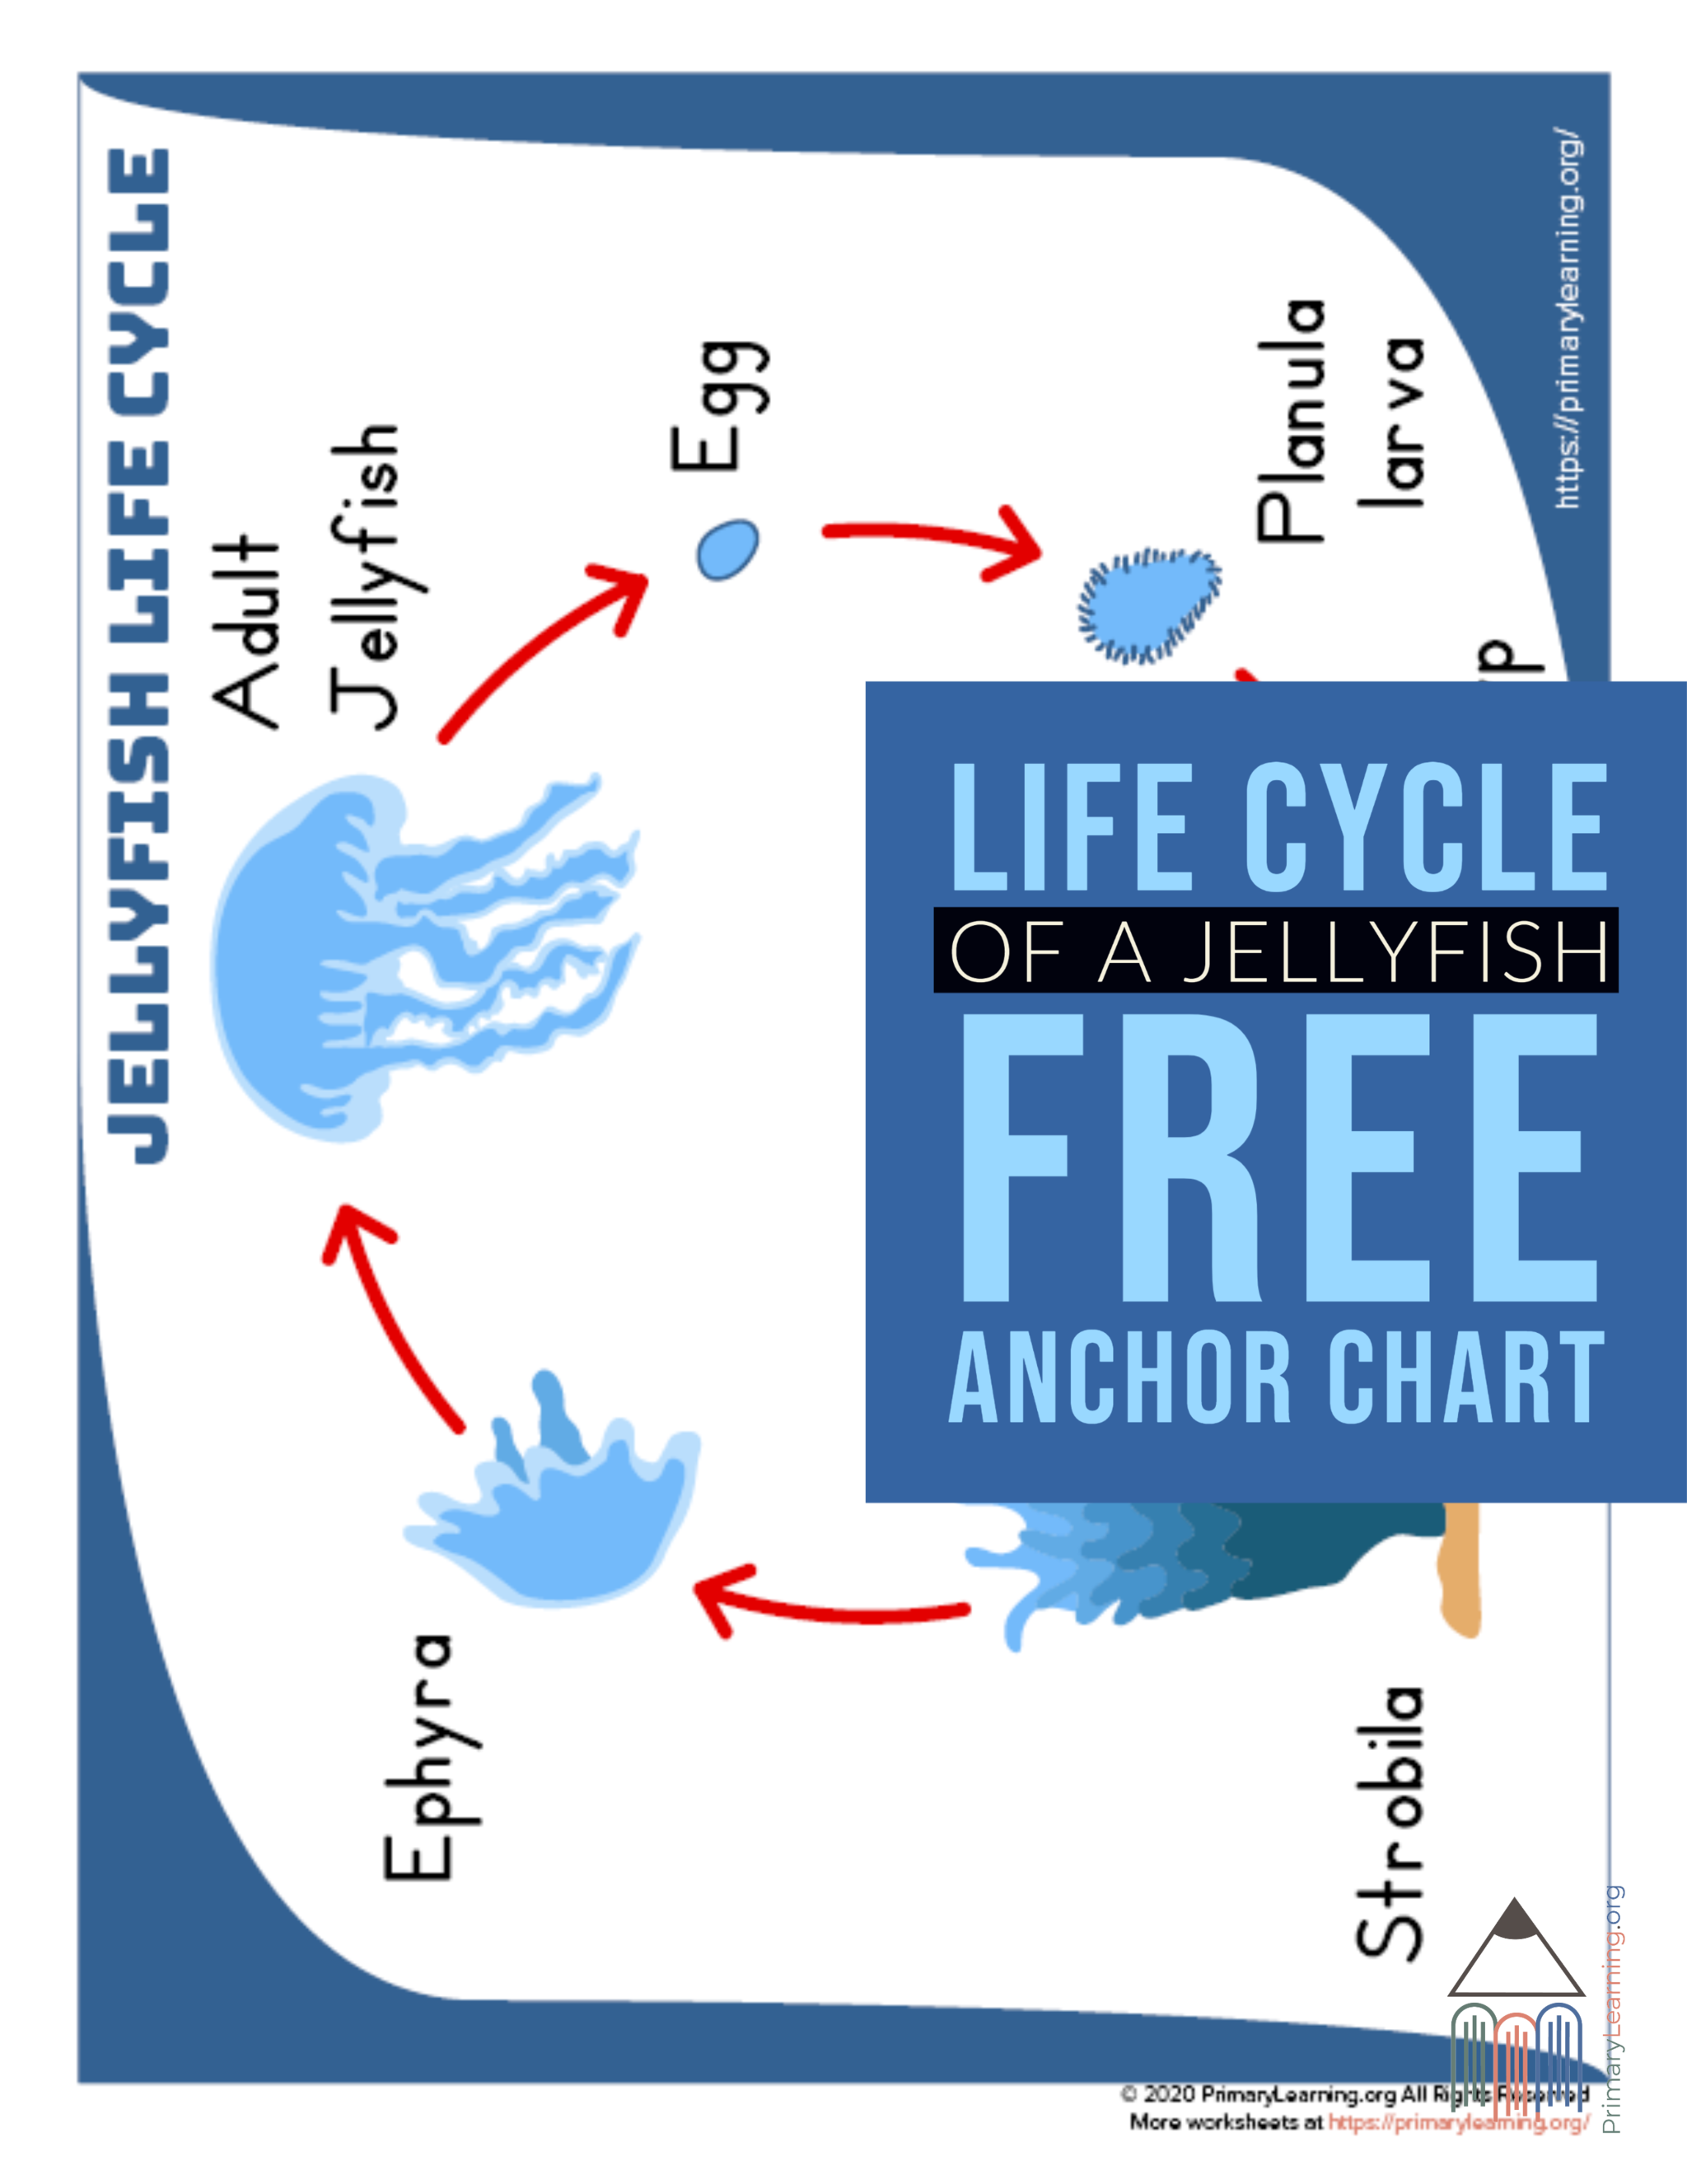 Jellyfish Life Cycle Anchor Chart